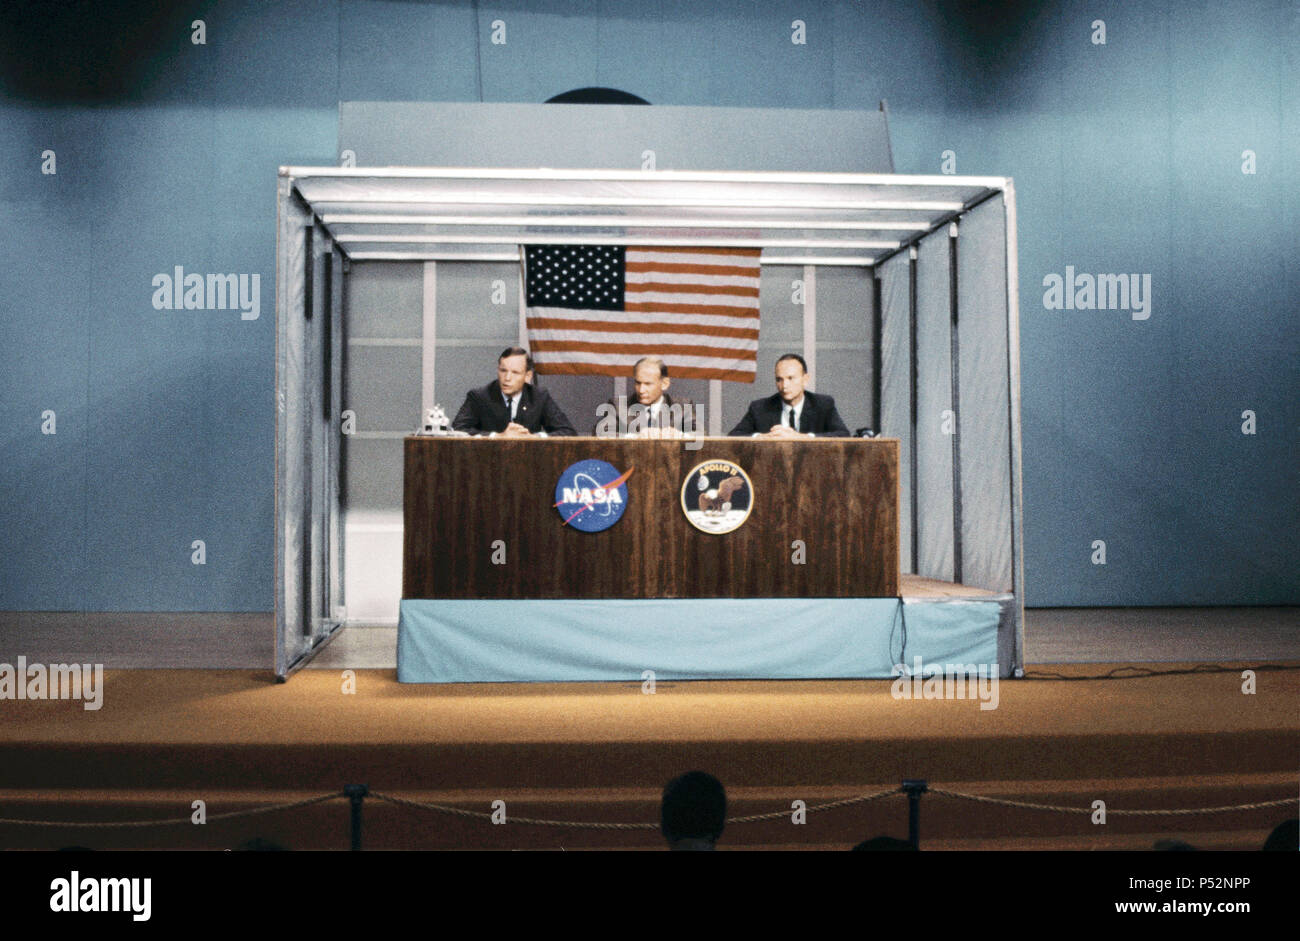 he three prime crewmen of the Apollo 11 lunar landing mission participate in a preflight press conference in the Building 1 auditorium on July 5, 1969. - Stock Image